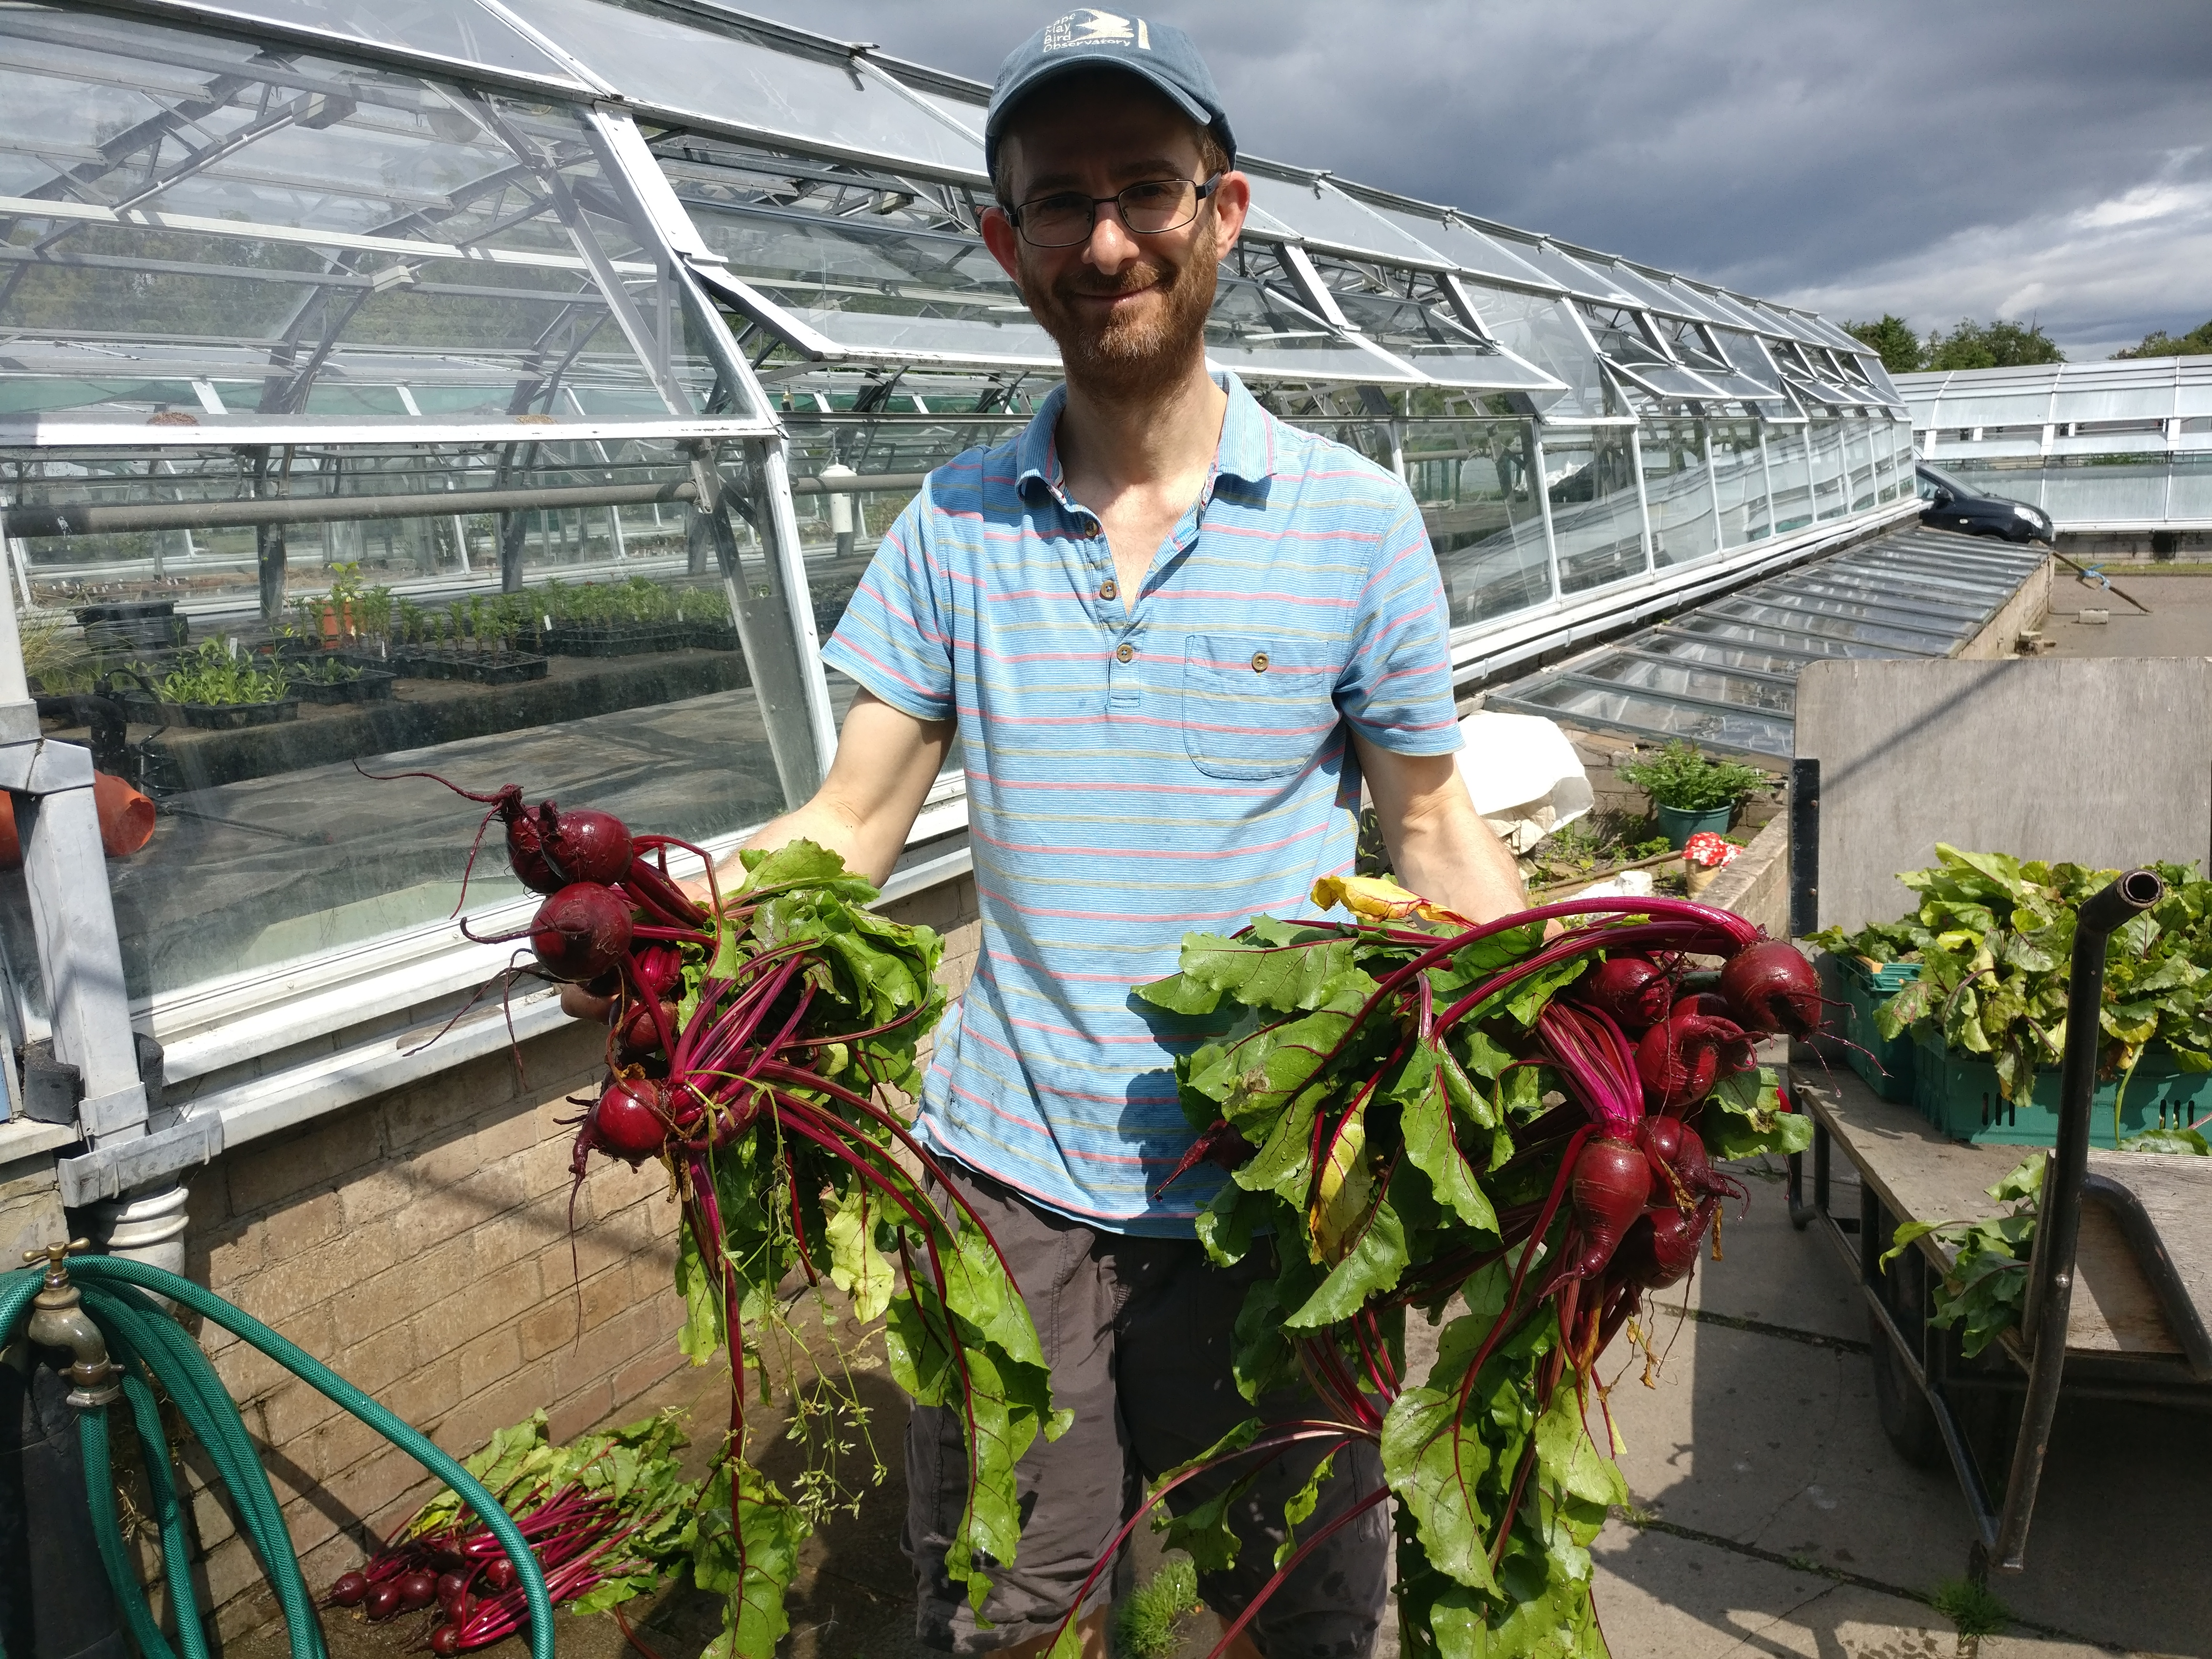 A photo of a man washing the beetroot